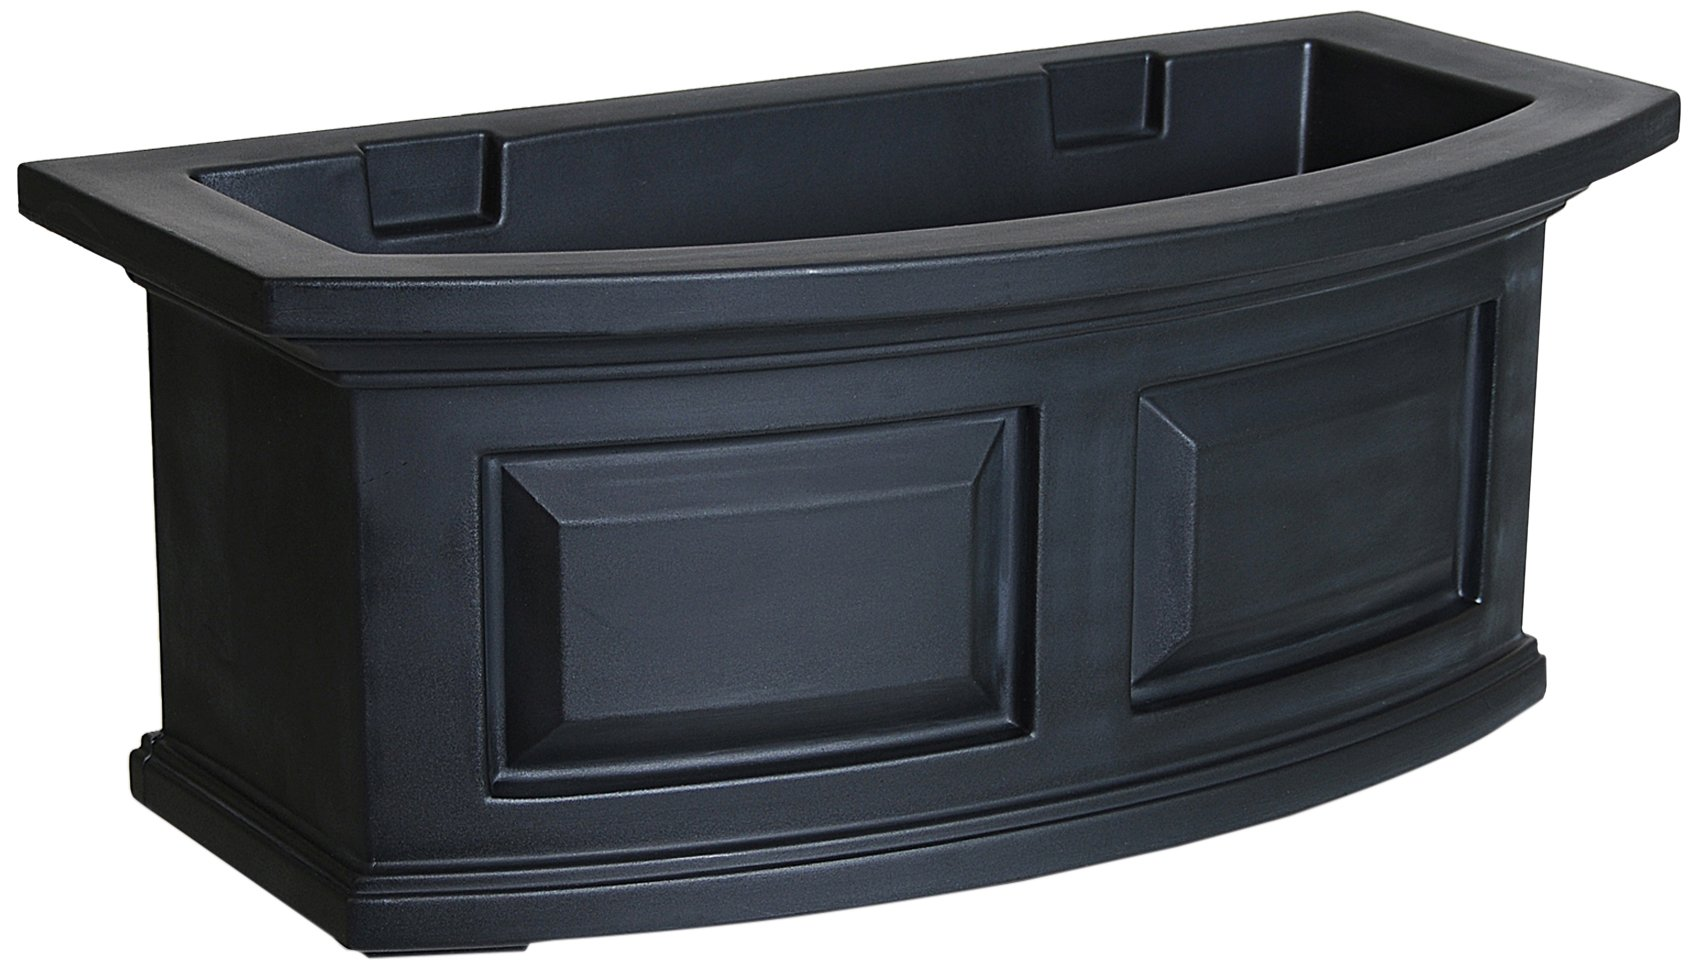 Mayne 4829-B Nantucket Polyethylene Window Box, 2', Black